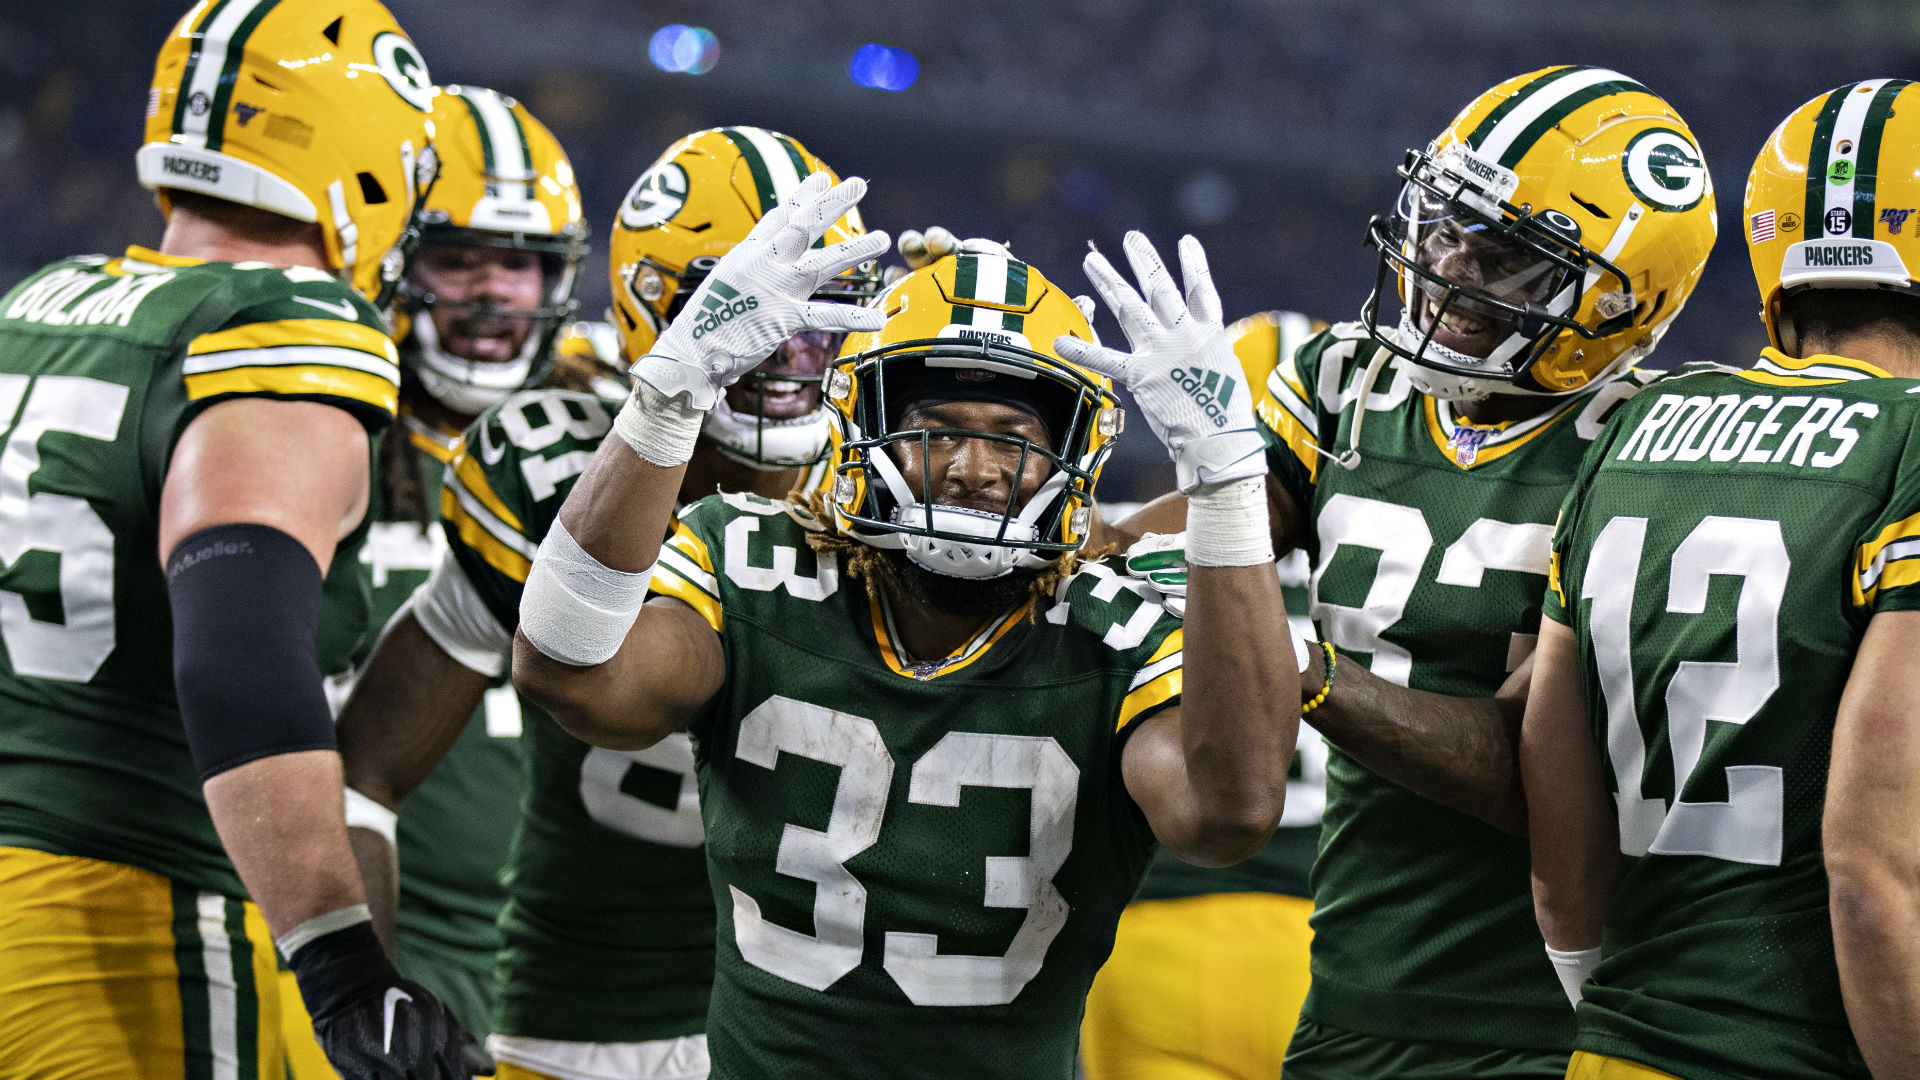 Packers Vs Cowboys Results Green Bay Holds Off Dallas